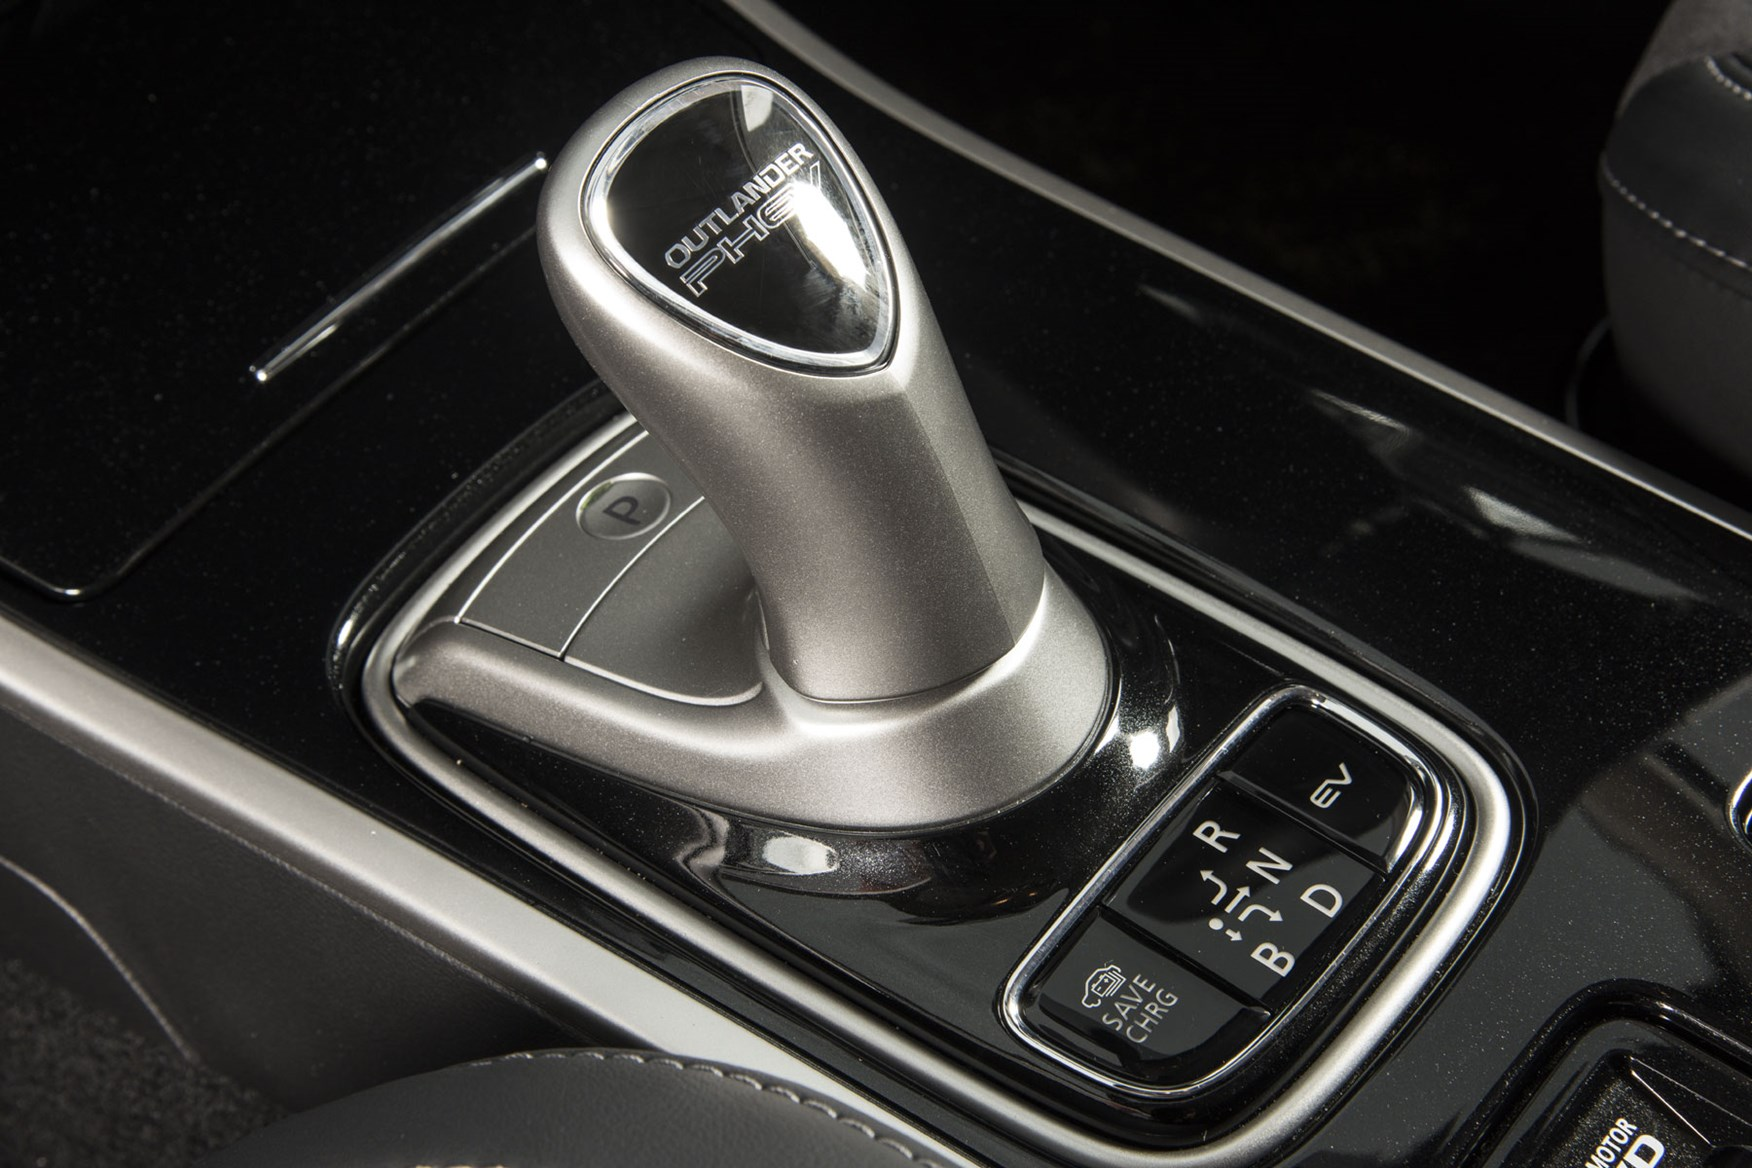 Mitsubishi Outlander Commercial 4x4 van review - 2019 PHEV gear selector